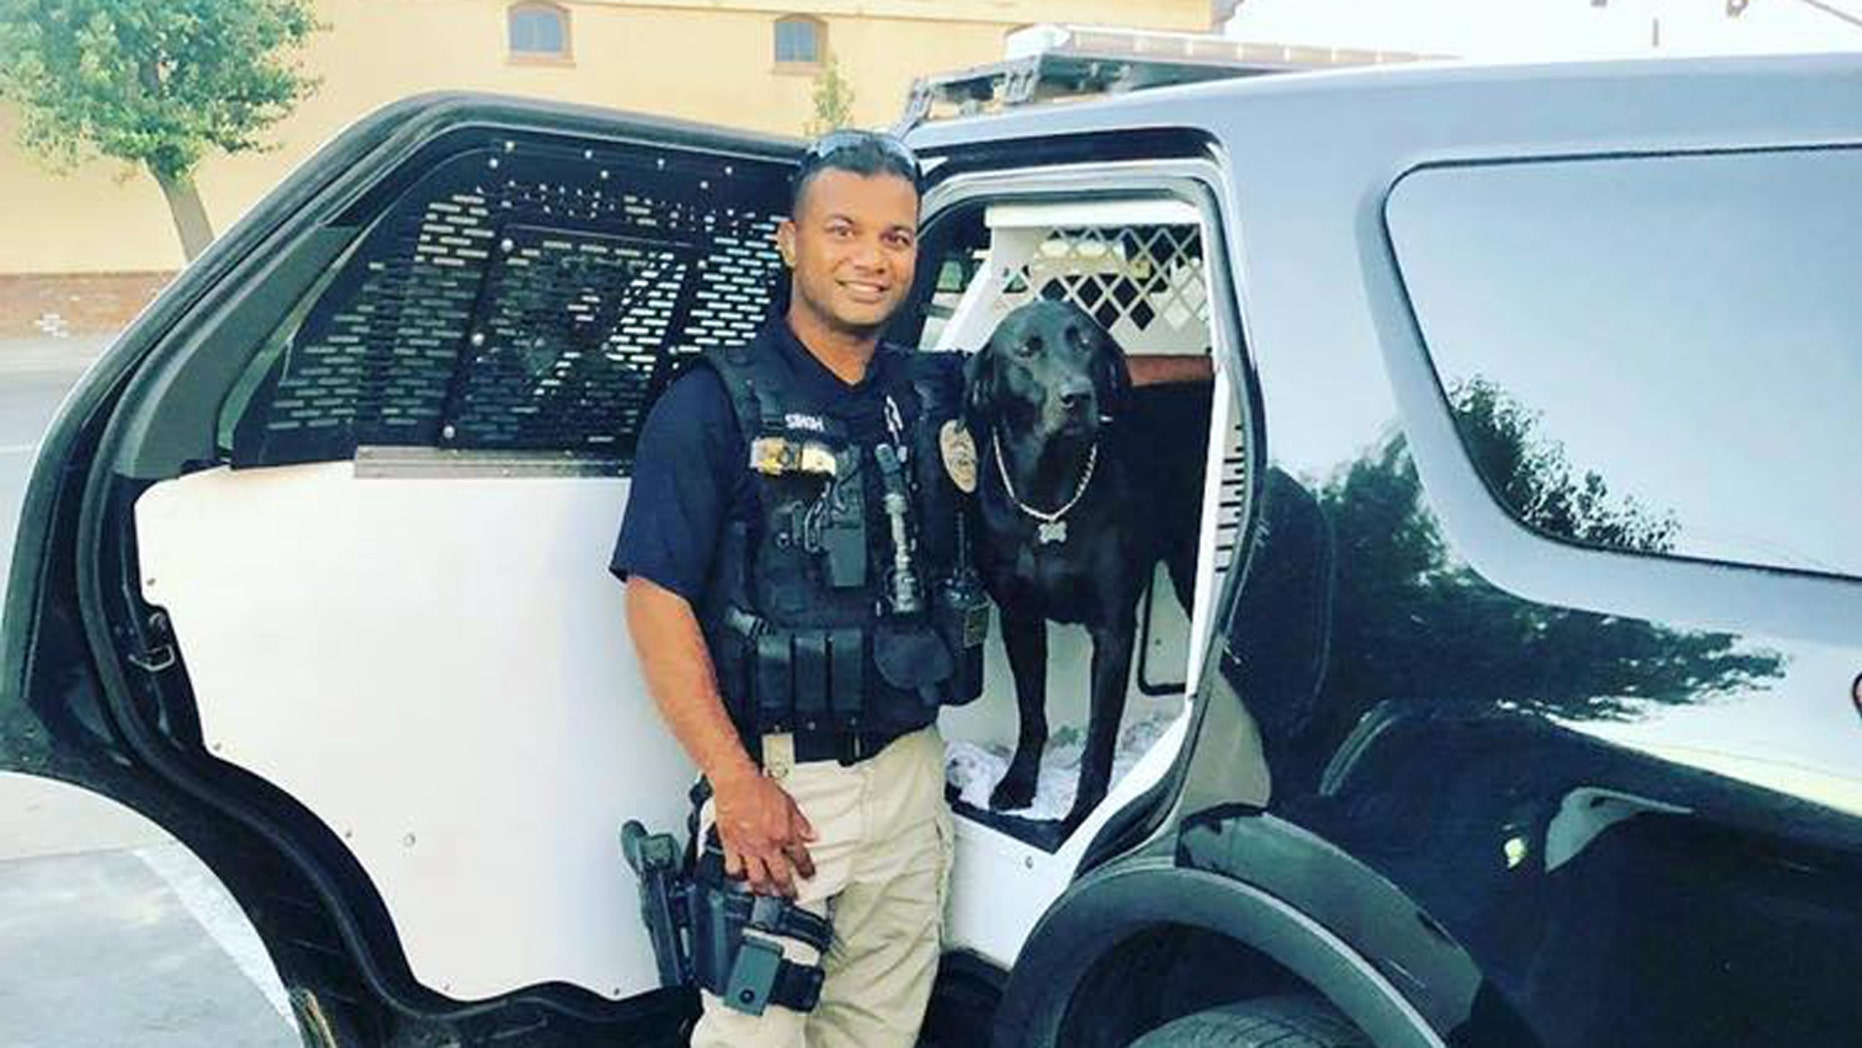 Suspect arrested in shooting death of California officer